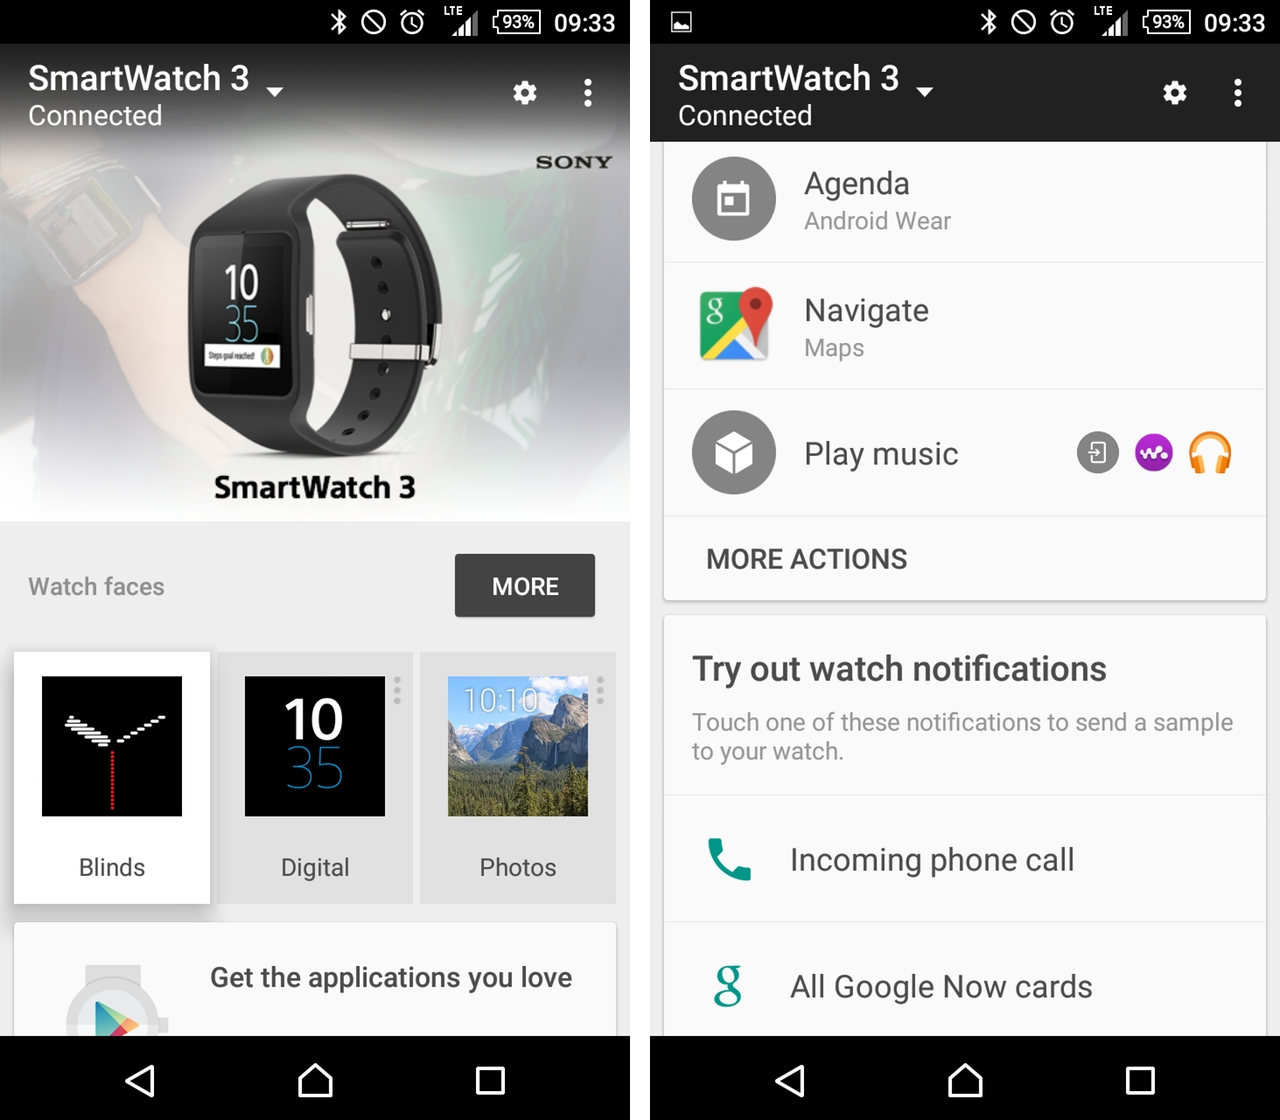 Android Wear app now lets you pair two watches on the same phone